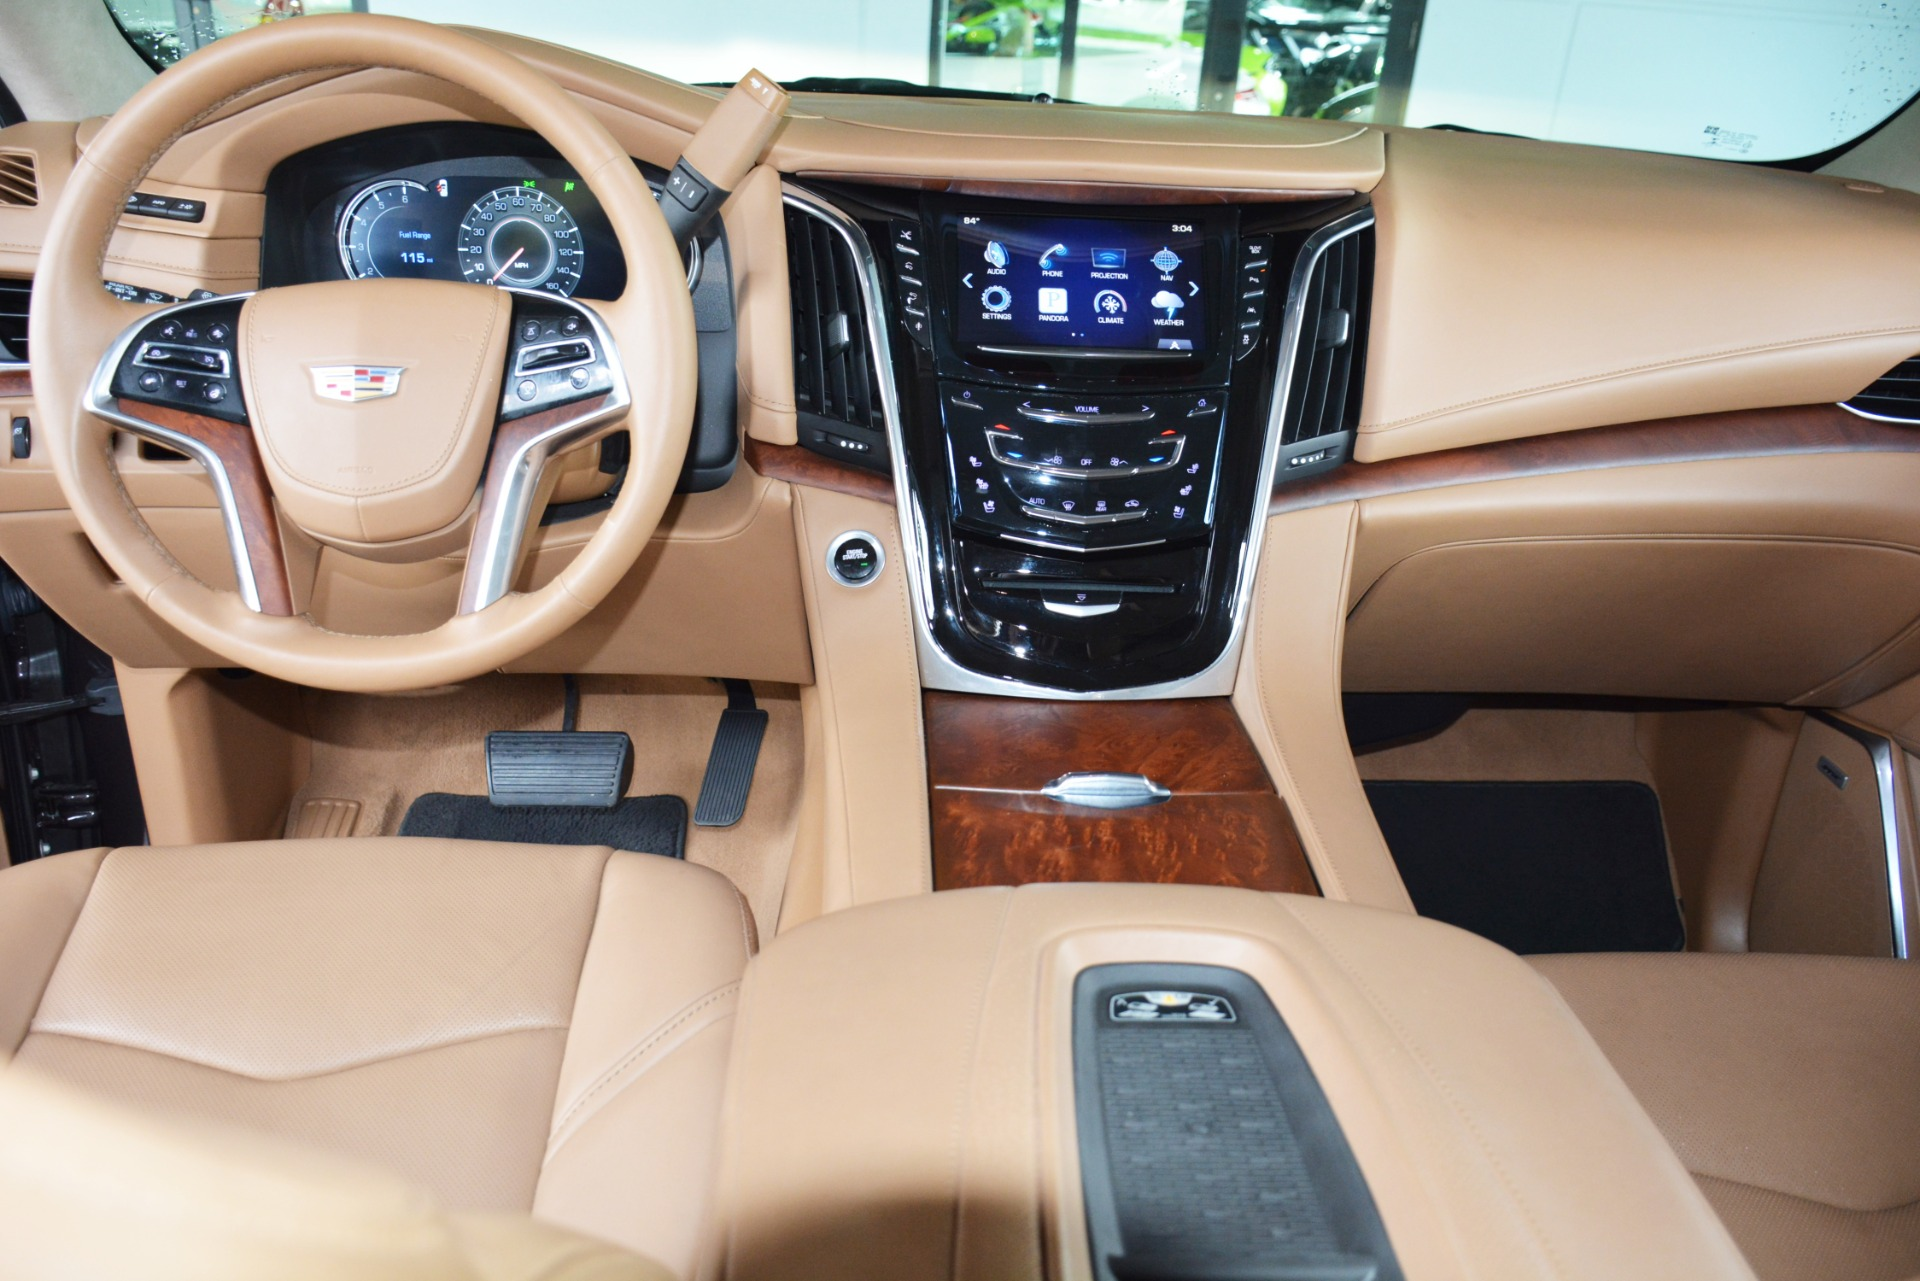 Used Car Down Payment Calculator >> Used 2016 Cadillac Escalade ESV Platinum For Sale ($58,900) | Marino Performance Motors Stock ...